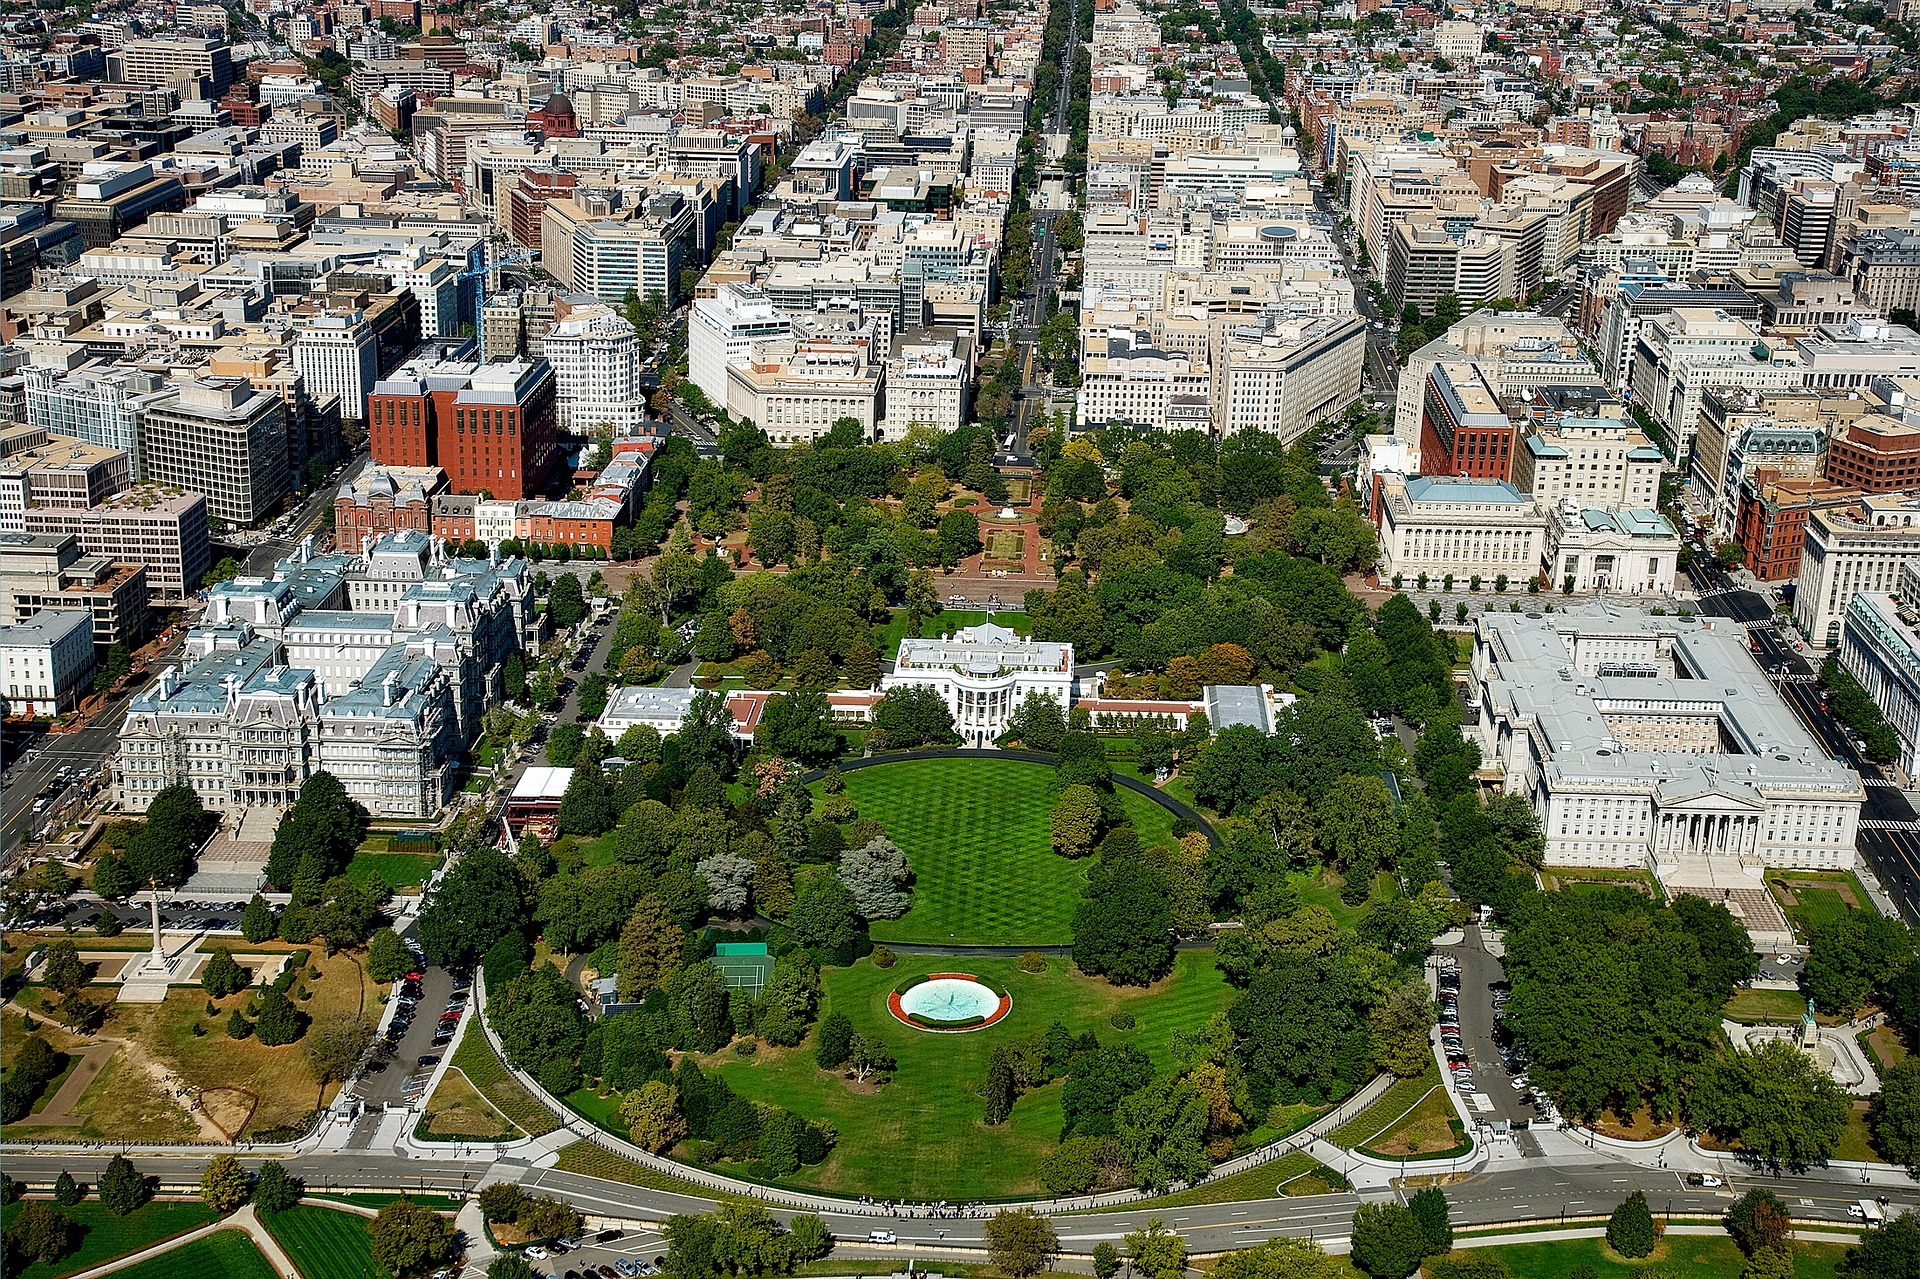 Aerial view of Washington, DC with The White House in center